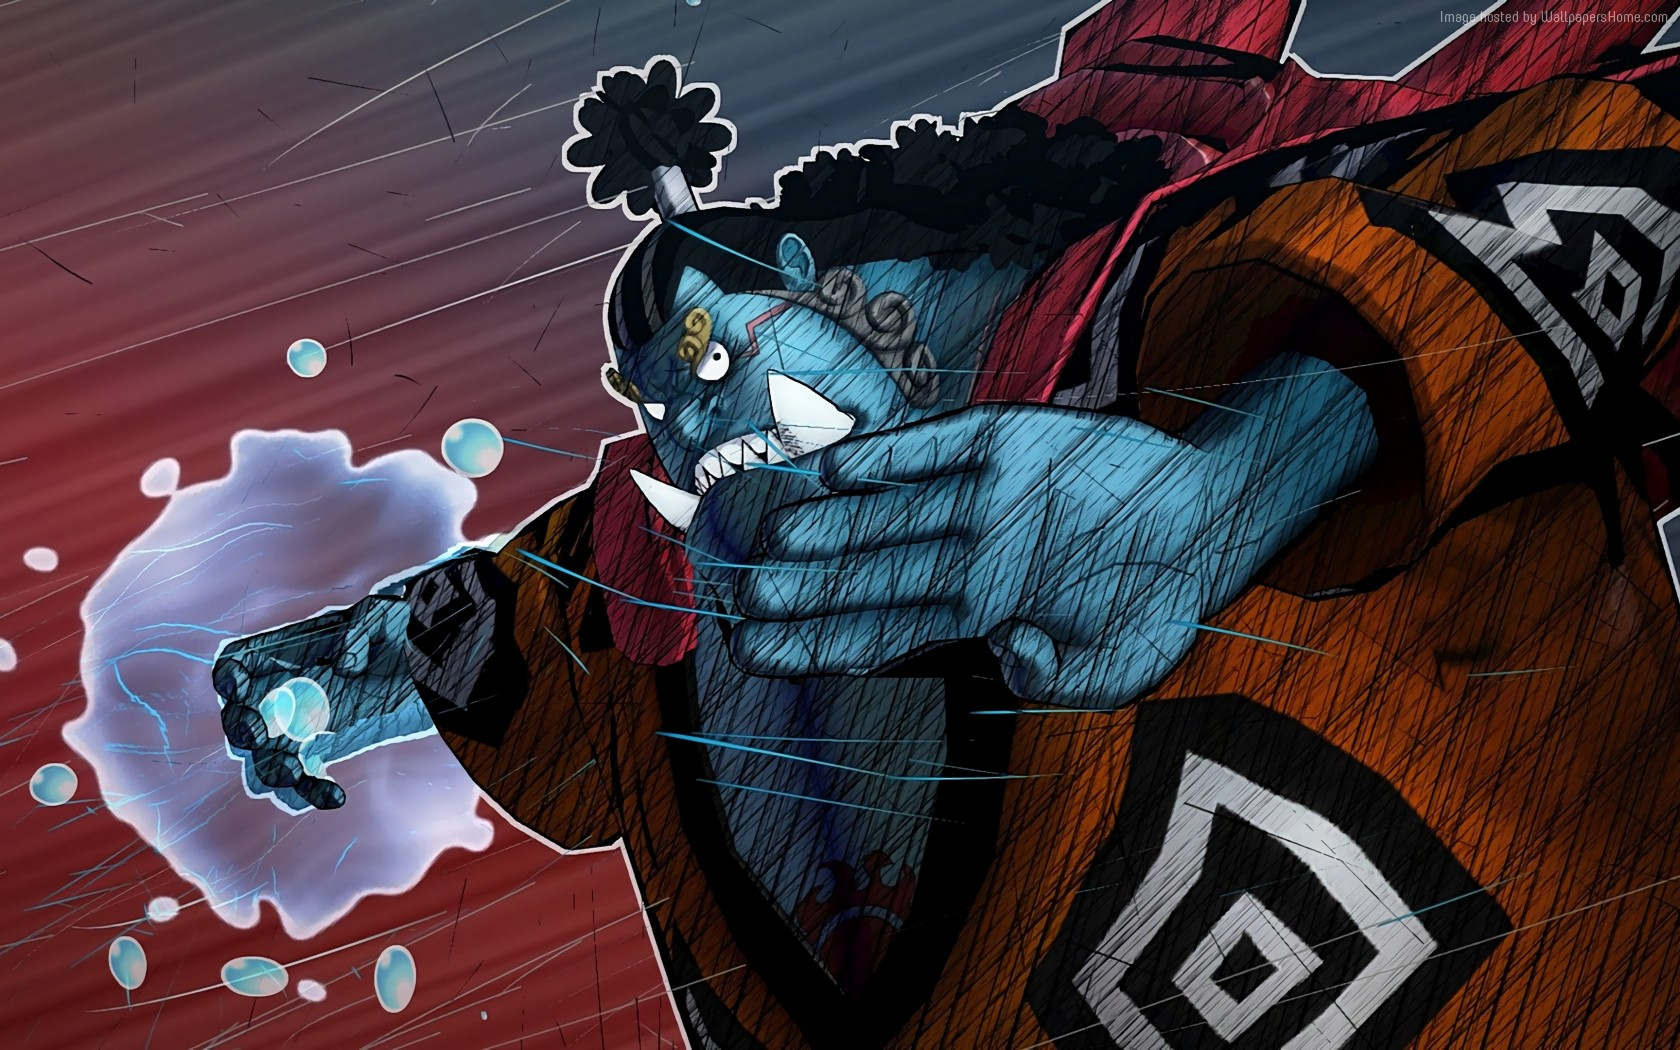 jinbe Wallpaper and Background Image | 1680x1050 | ID:860467 - Wallpaper Abyss